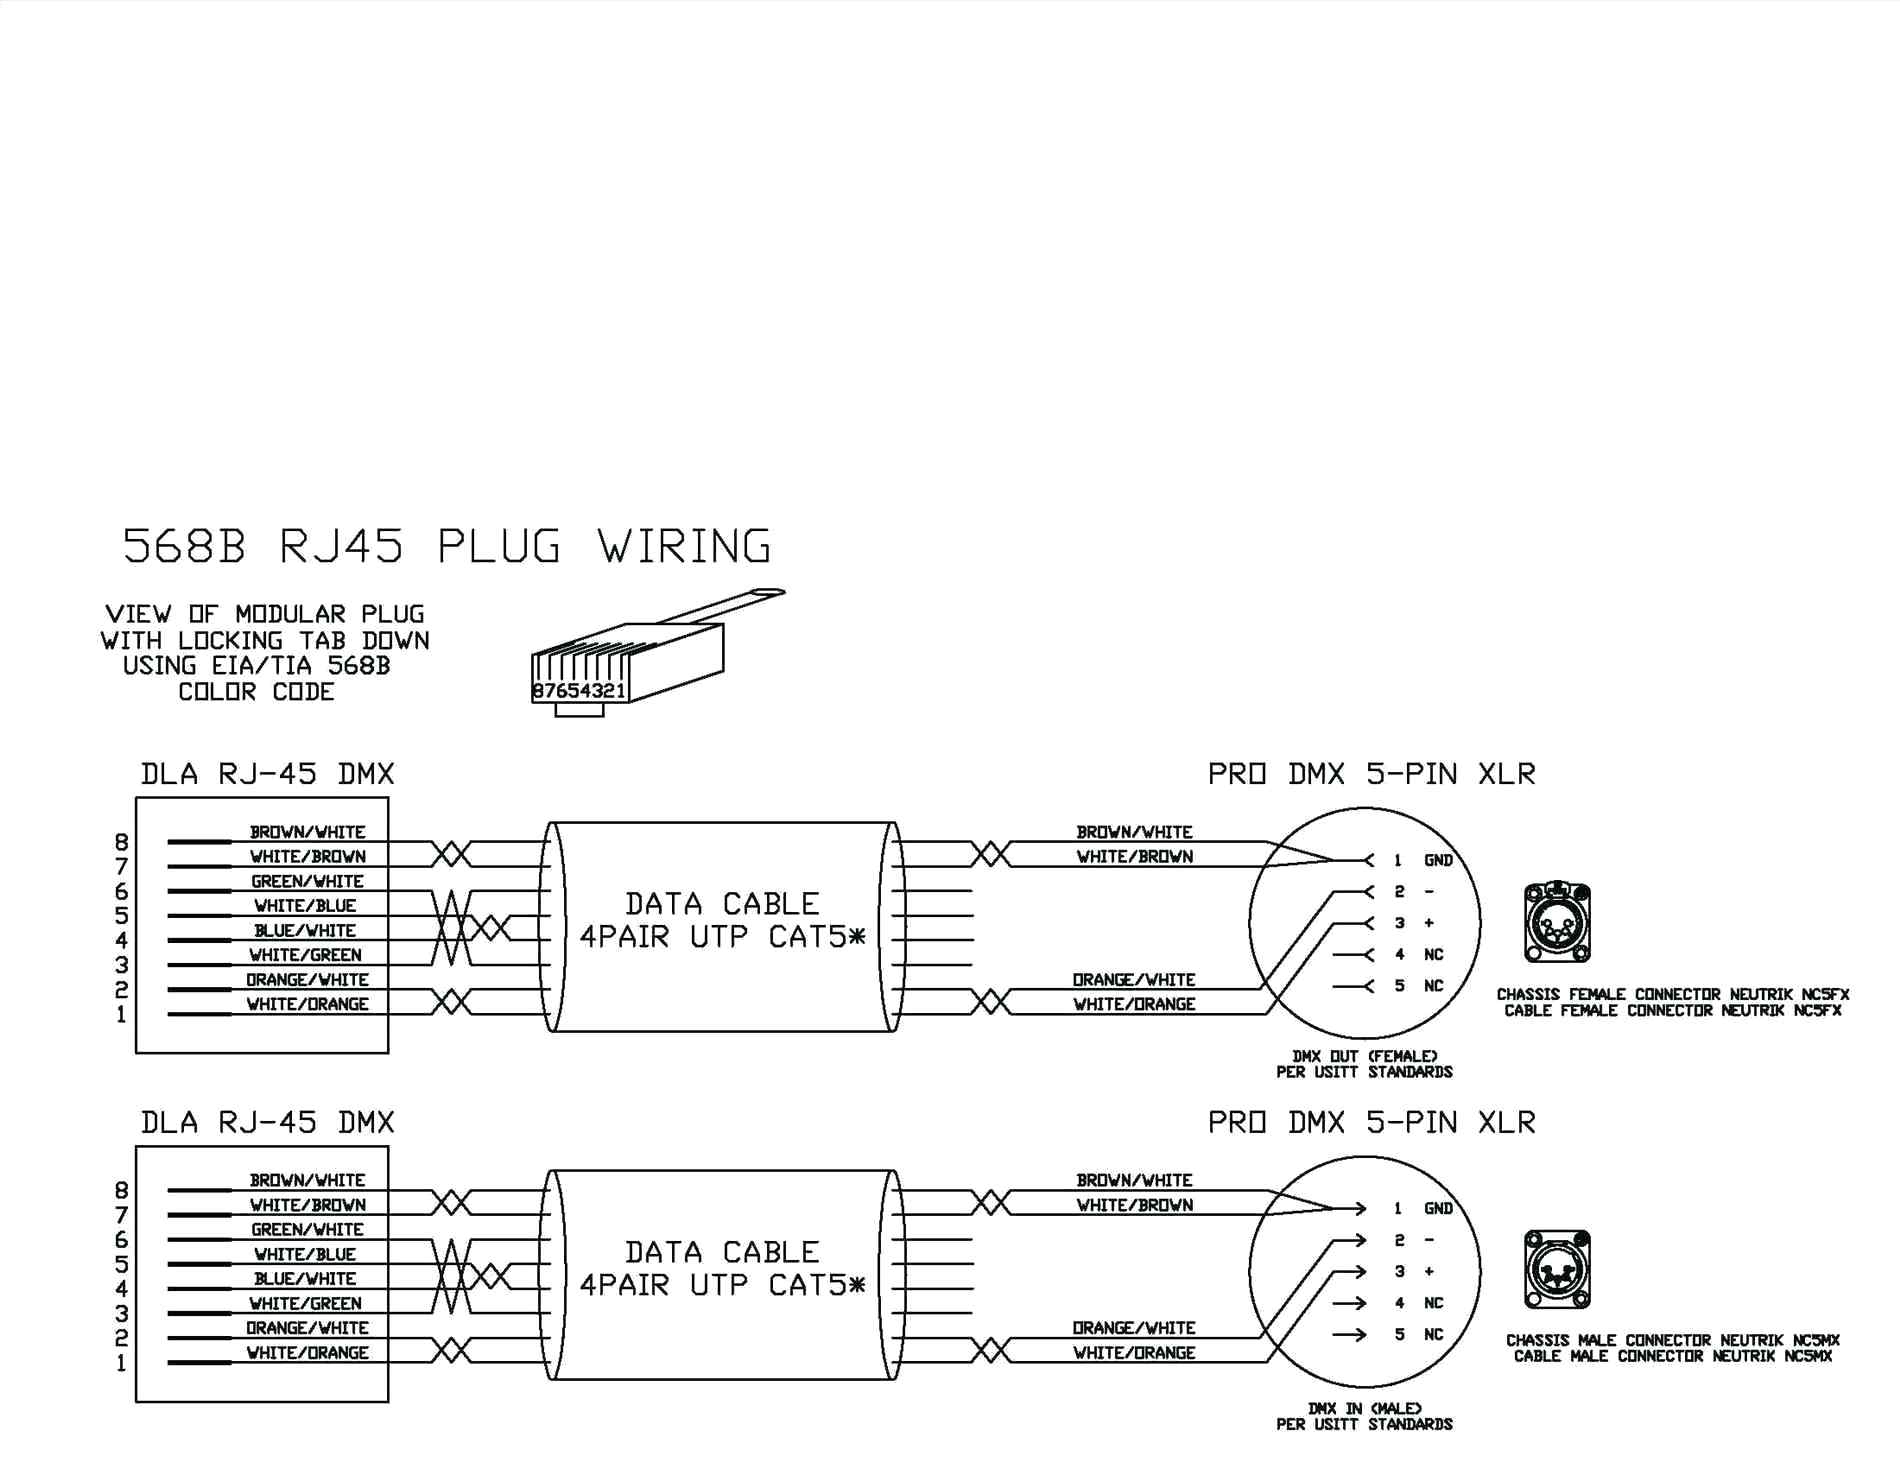 Remarkable Usb Plug Schematic Wiring Library Usb Plug Wiring Diagram Usb Wiring Digital Resources Inamapmognl